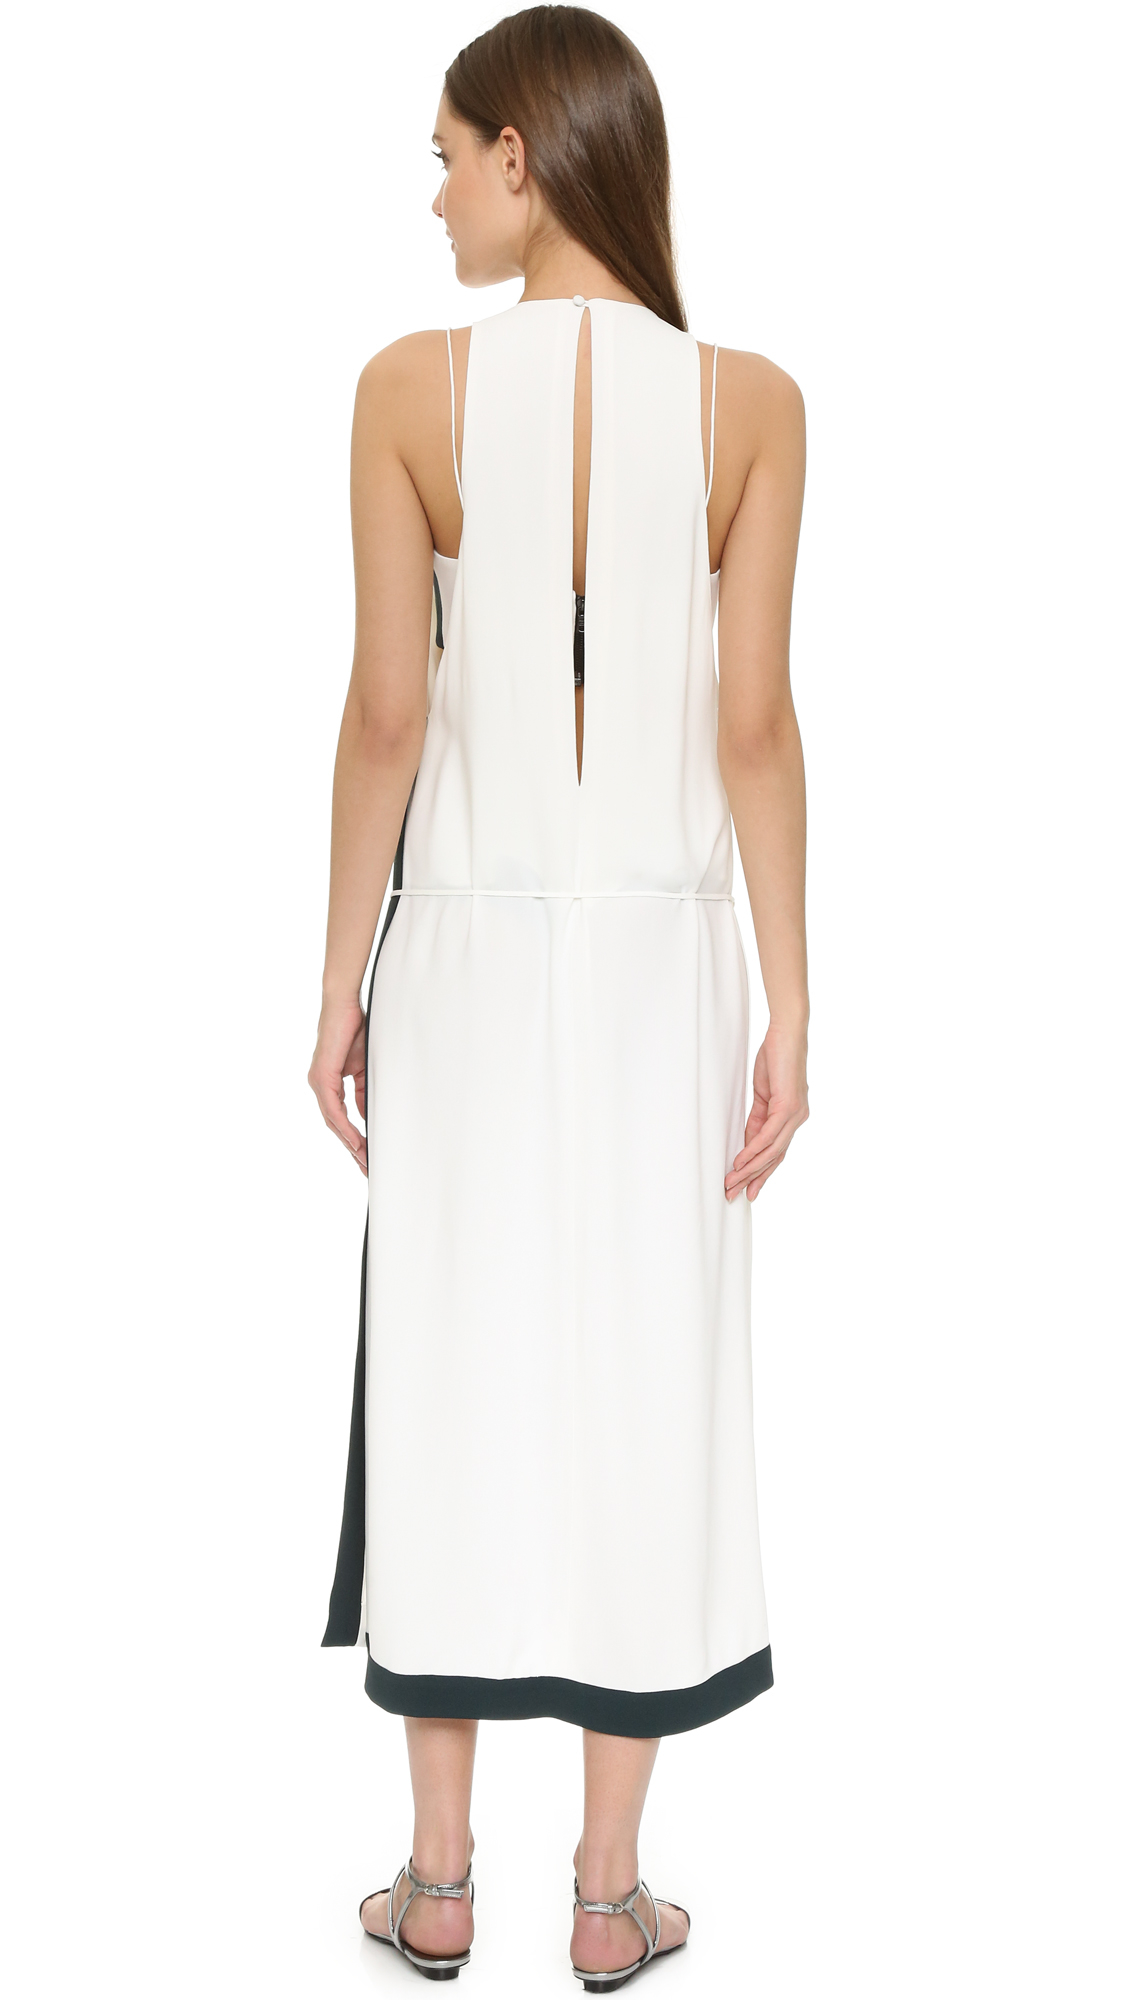 Lyst - Josh Goot Split Long Line Dress in White